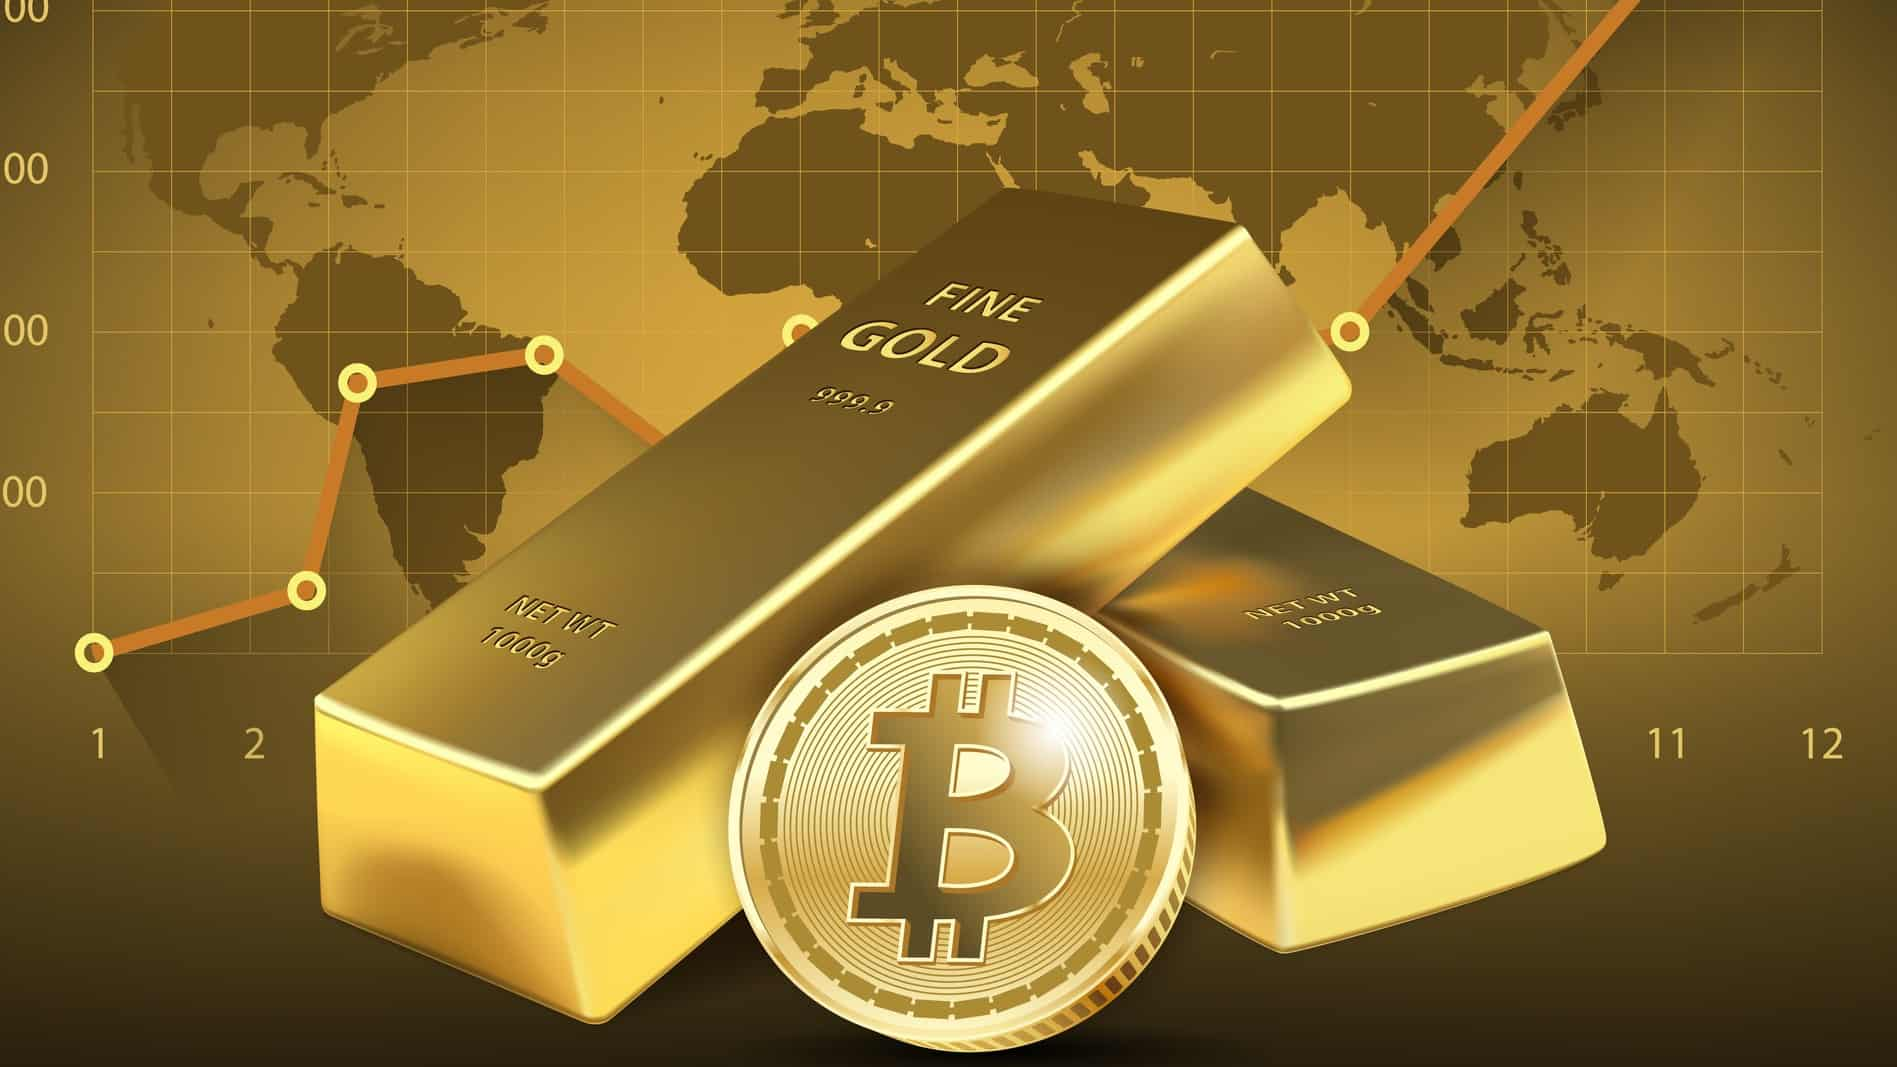 bitcoin volatility makes gold investment more attractive